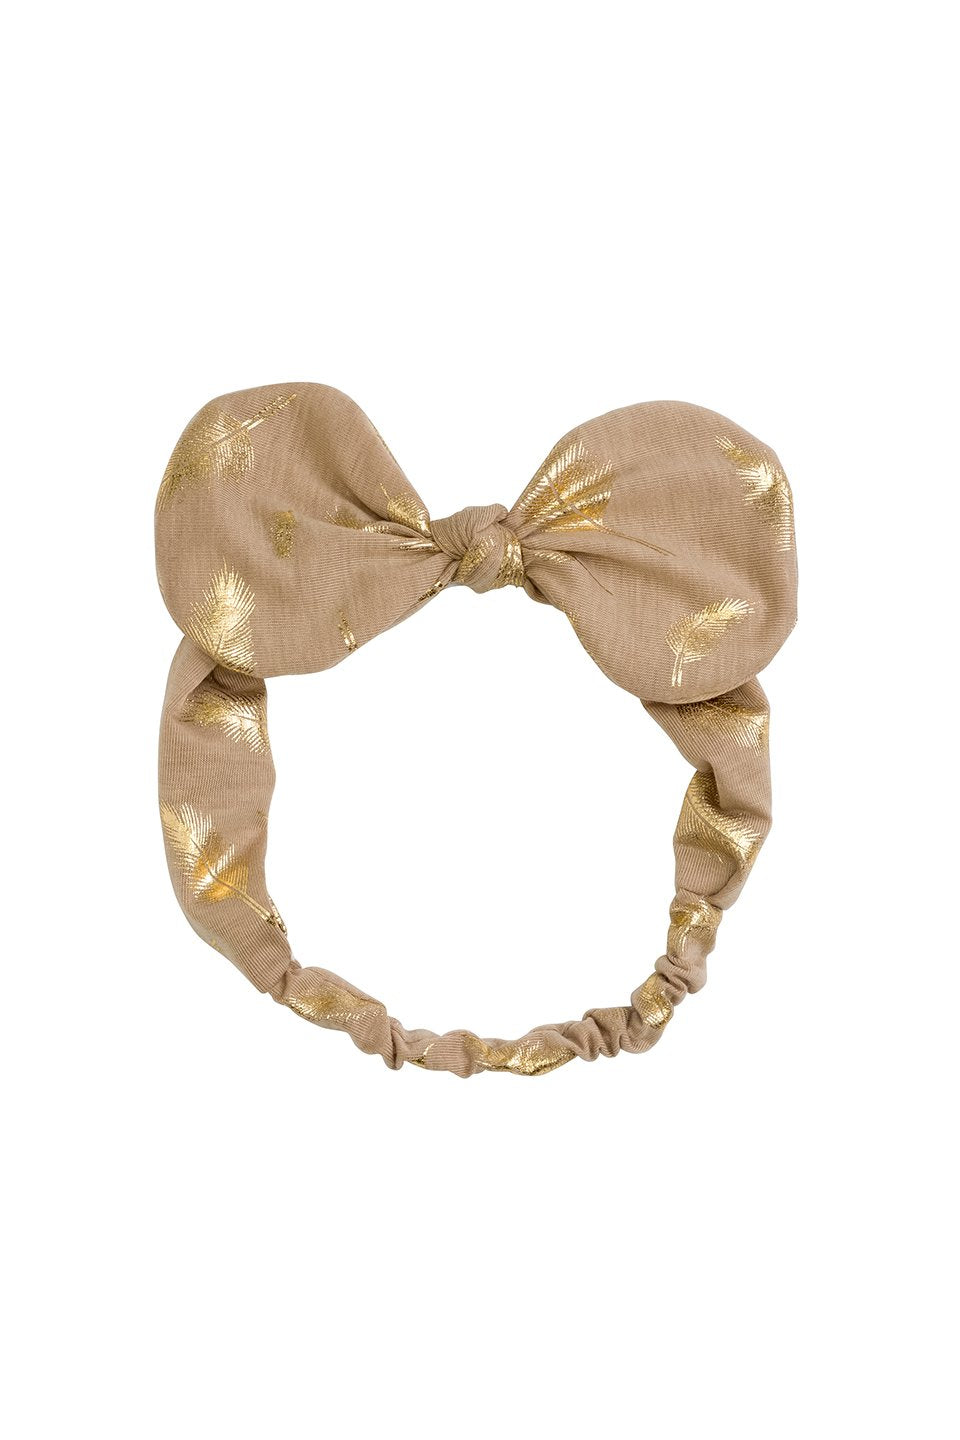 Bunnie Bow Wrap - Tan/Gold Feather Print - PROJECT 6, modest fashion